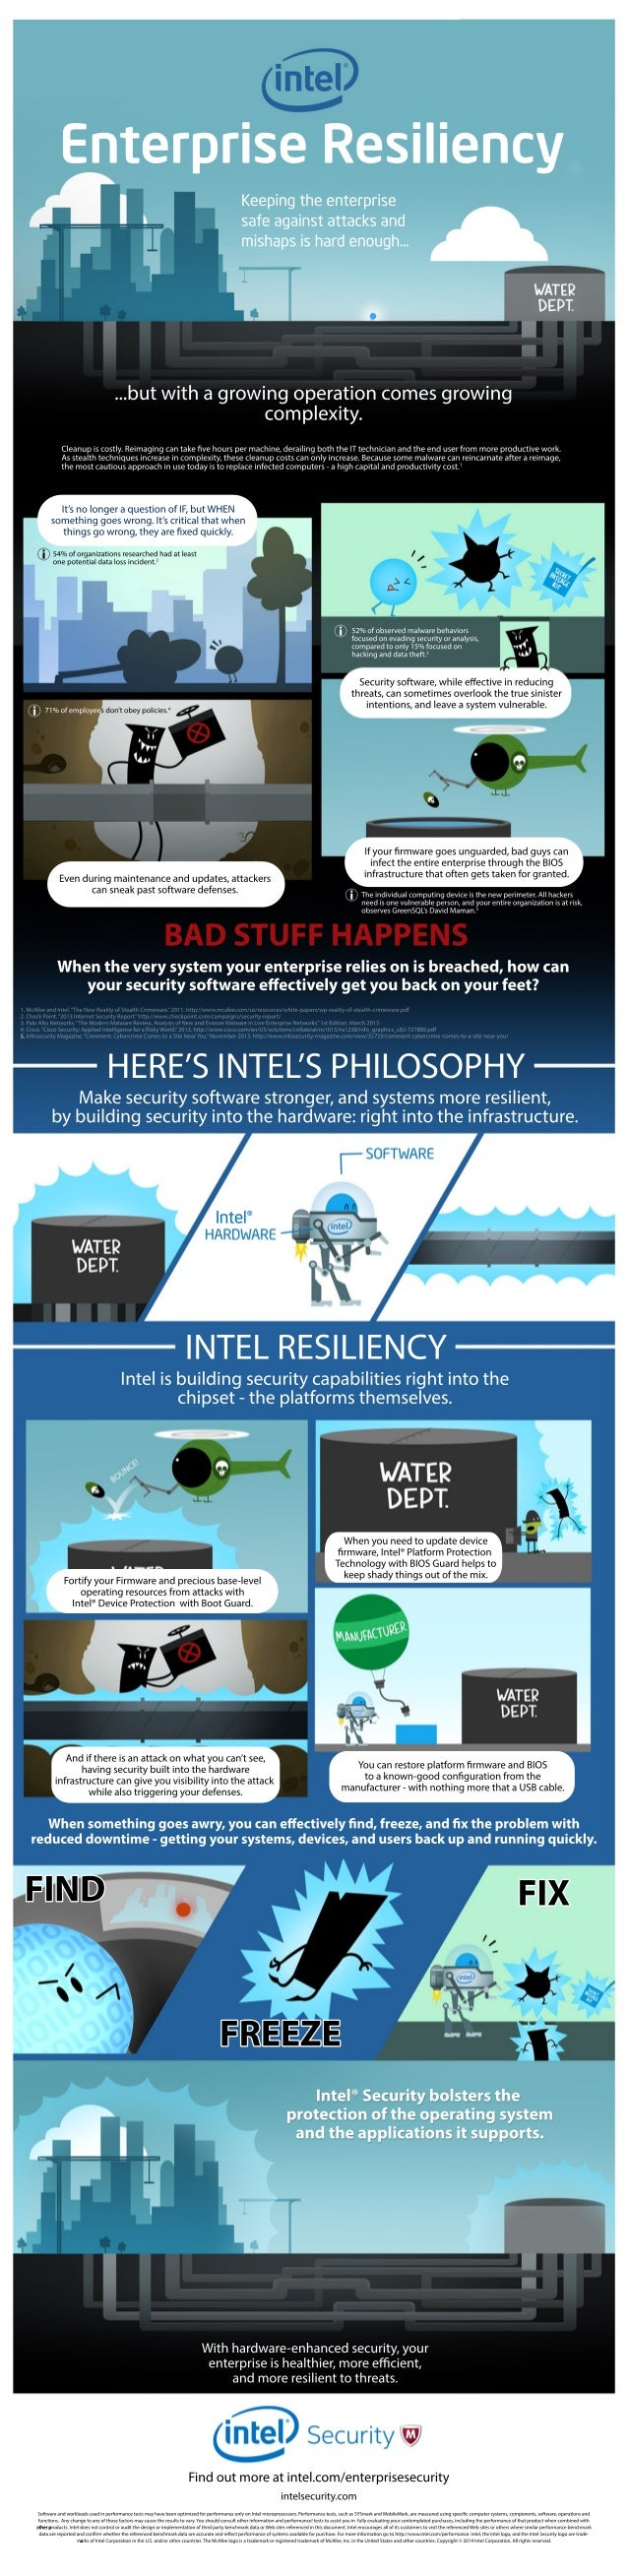 How Intel Security Gives the Enterprise Resiliency - Infographic